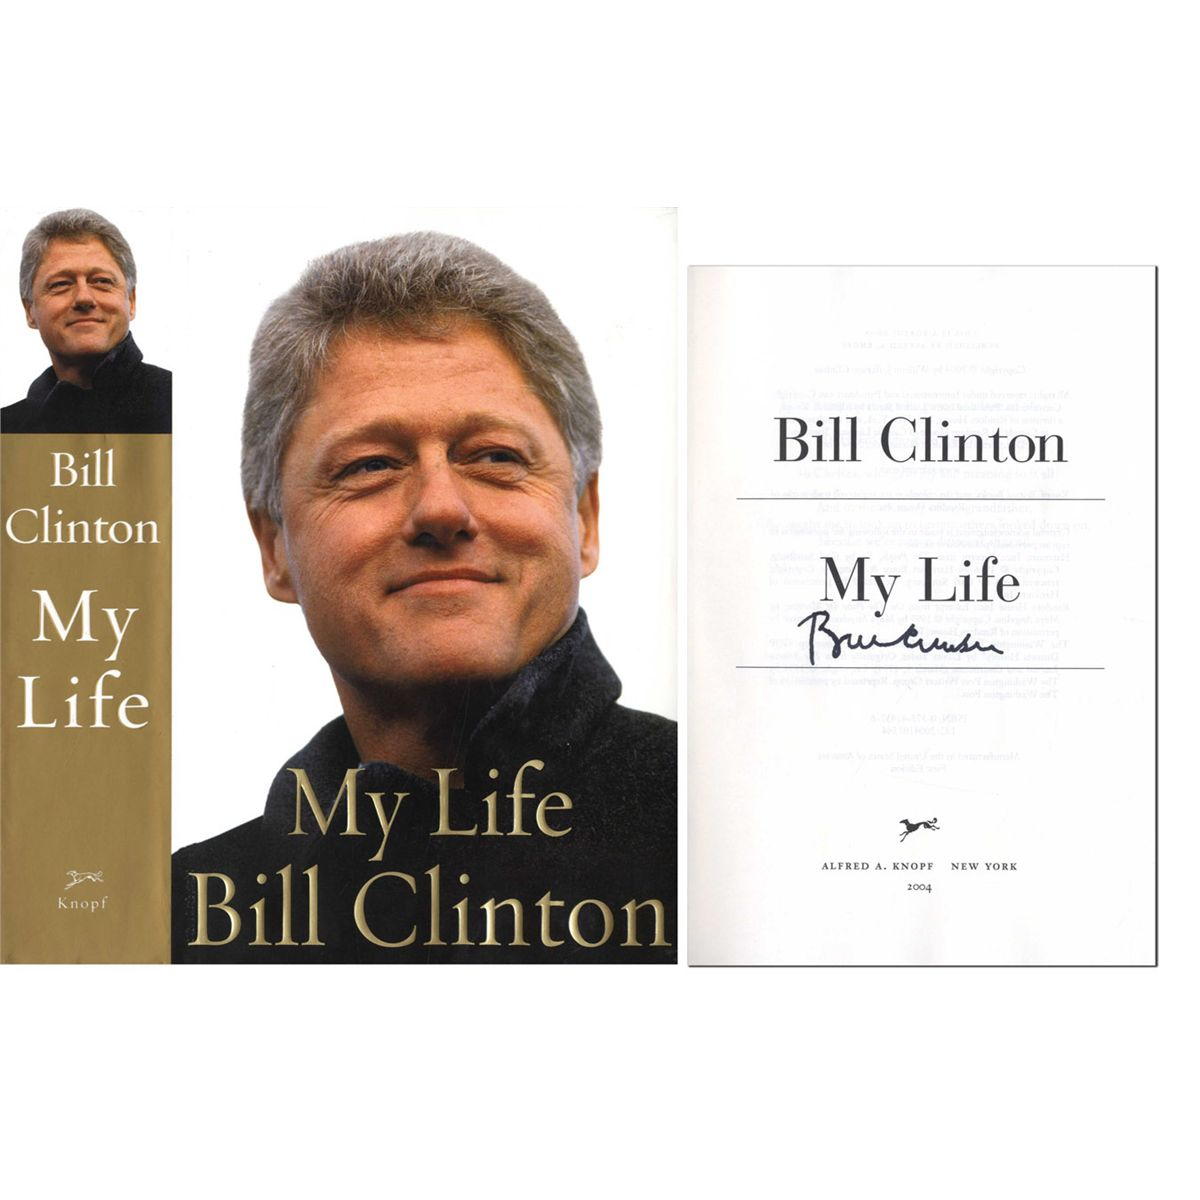 an introduction to the life of bill clinton Bill clinton (1946-), the 42nd us president, served in office from 1993 to 2001 prior to that, the arkansas native and democrat was governor of his home state during clinton's time in the .